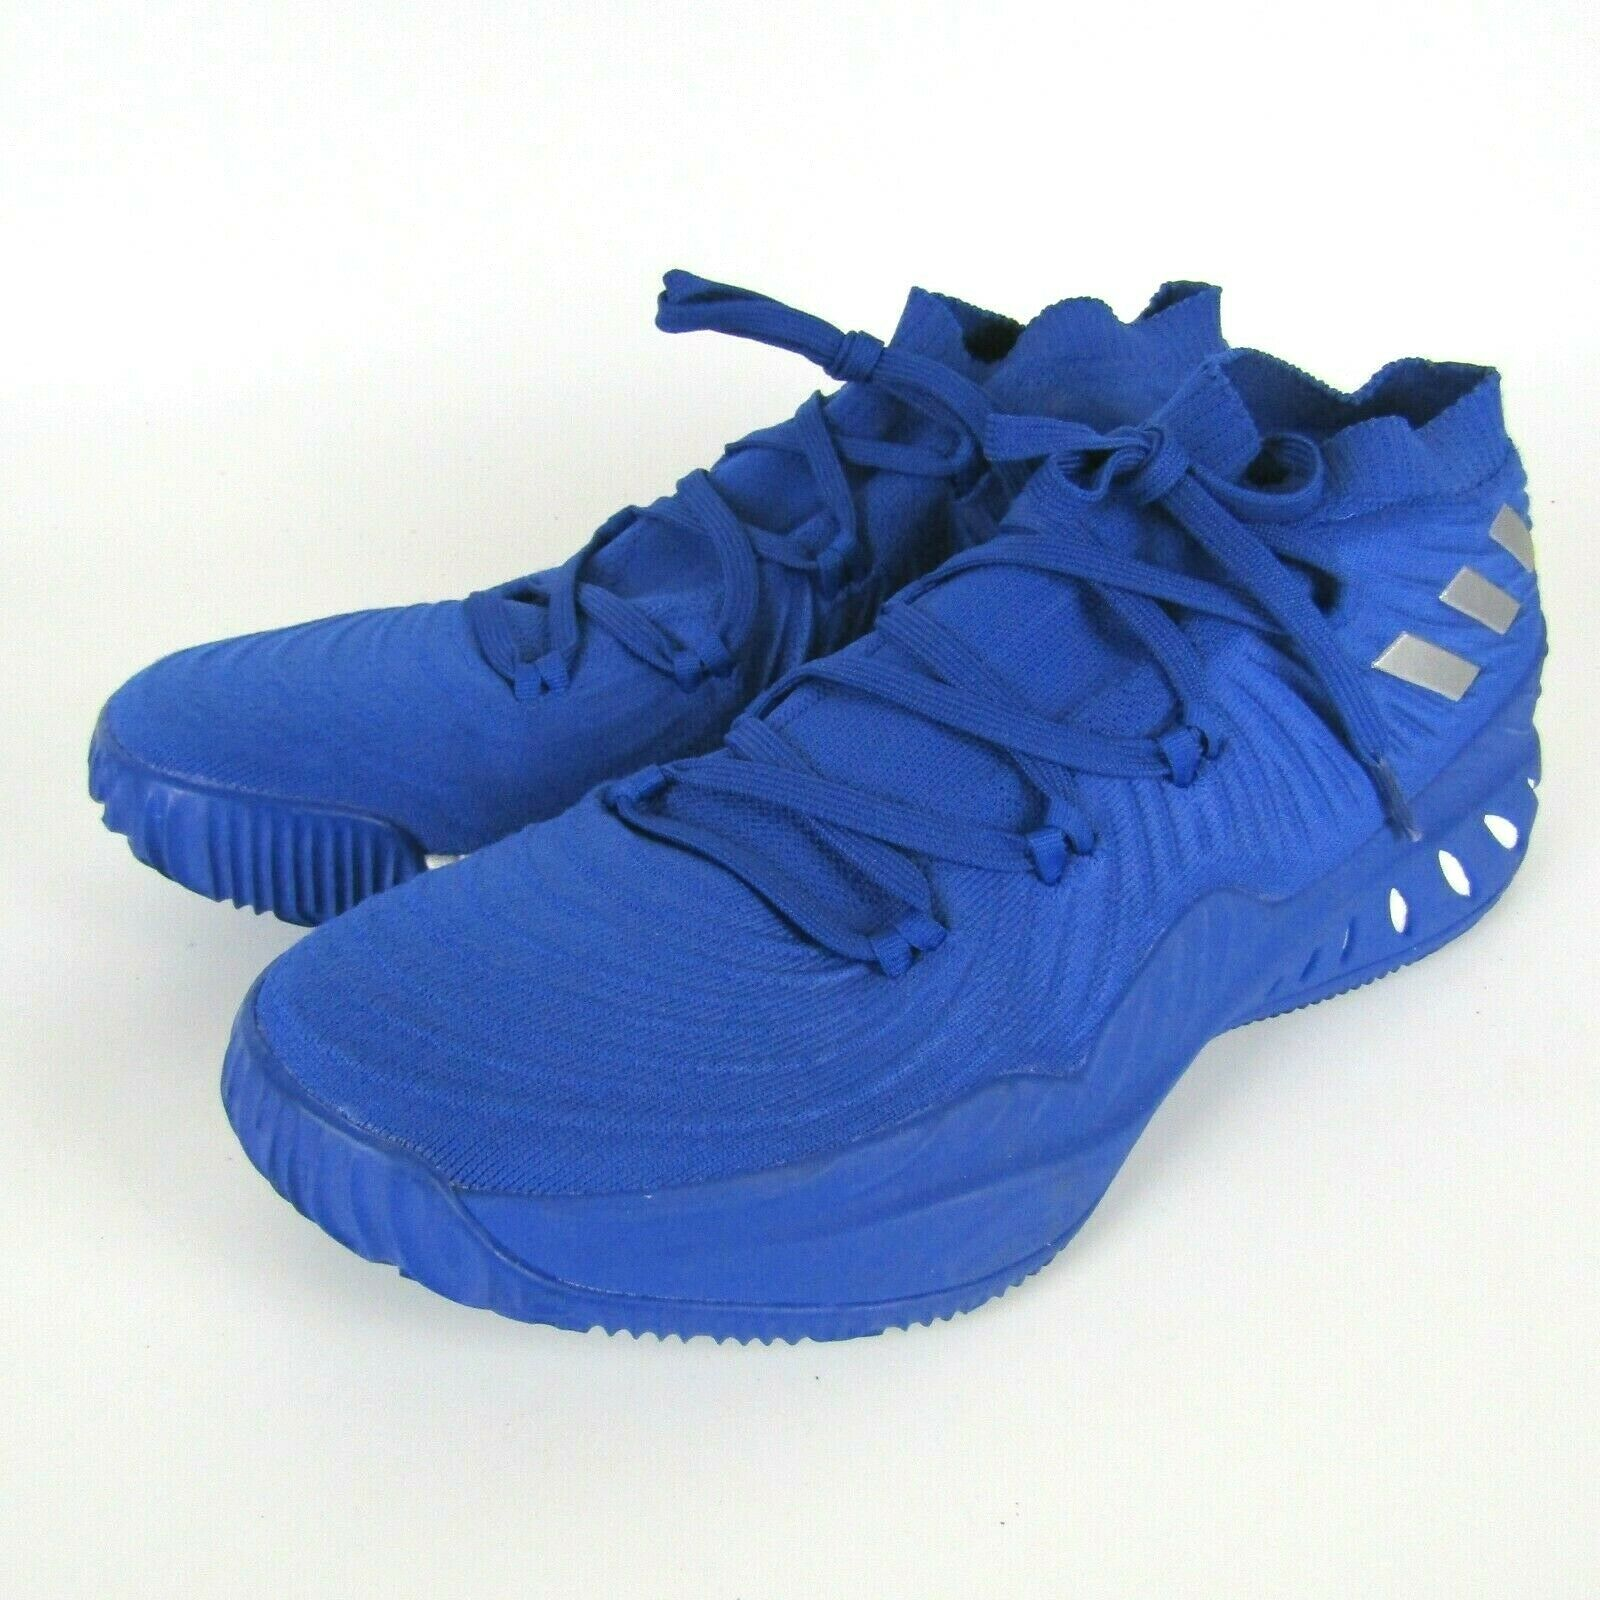 Adidas Crazy Explosive 2017 Low Basketball Shoe Blue White Men's Size 17  B75922 image 3